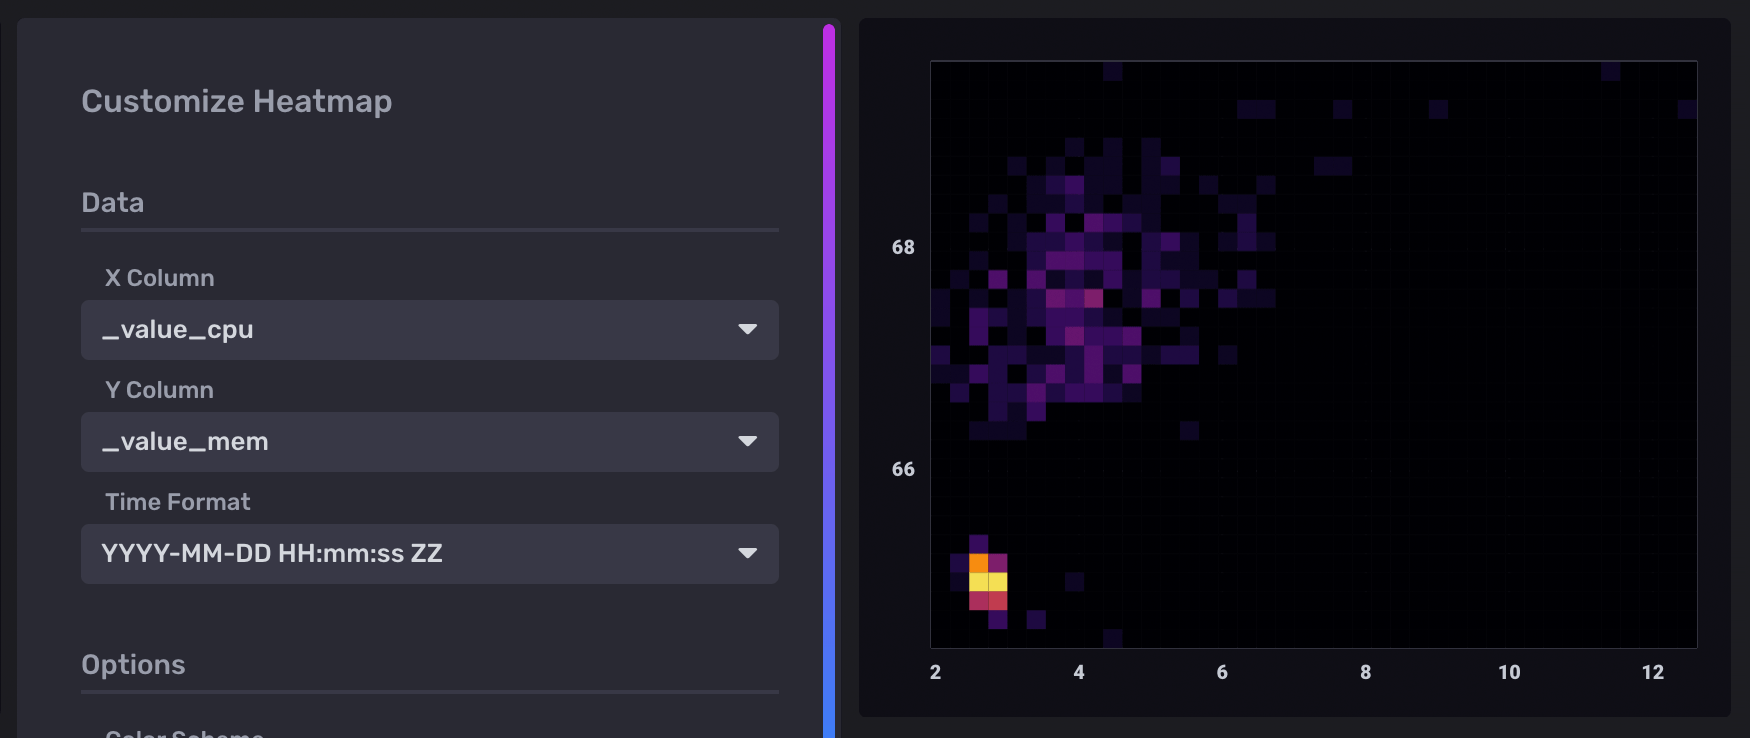 Heatmap correlation example